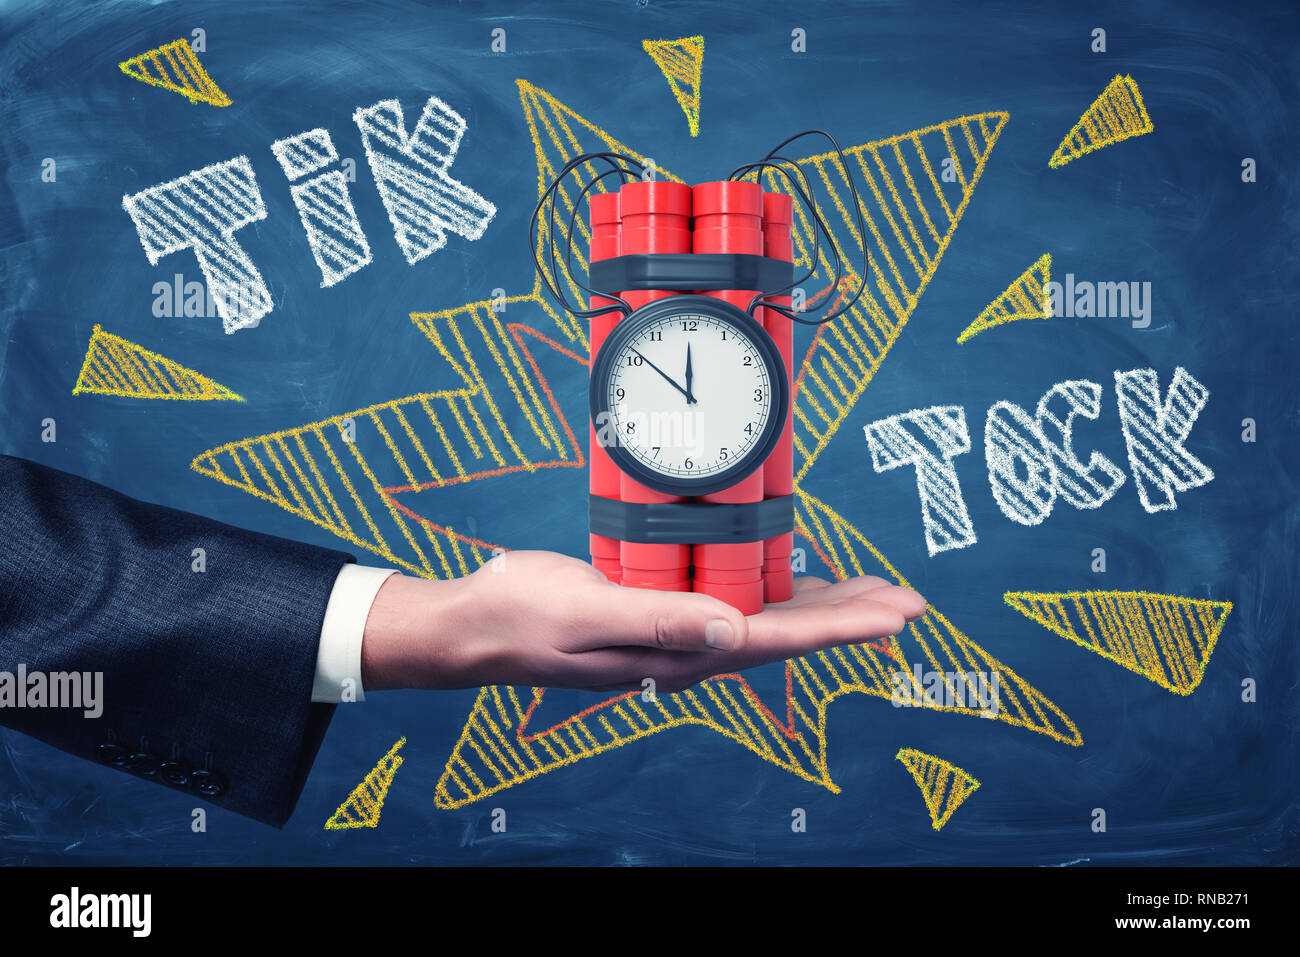 Man's hand facing up holding dynamite bundle with time bomb on blackboard background with chalk words 'tick tock'. - Stock Image